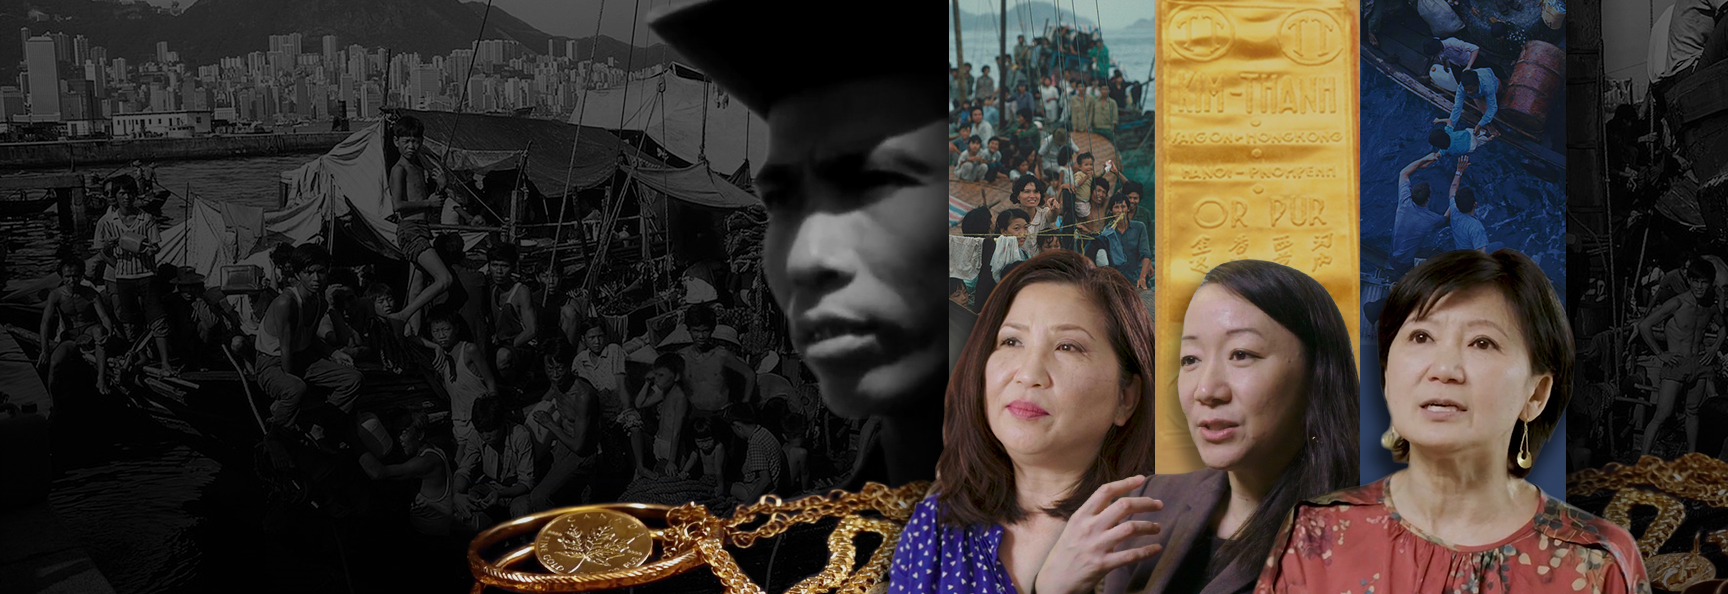 GOLD IN TIMES OF CRISIS - Passage out of Vietnam